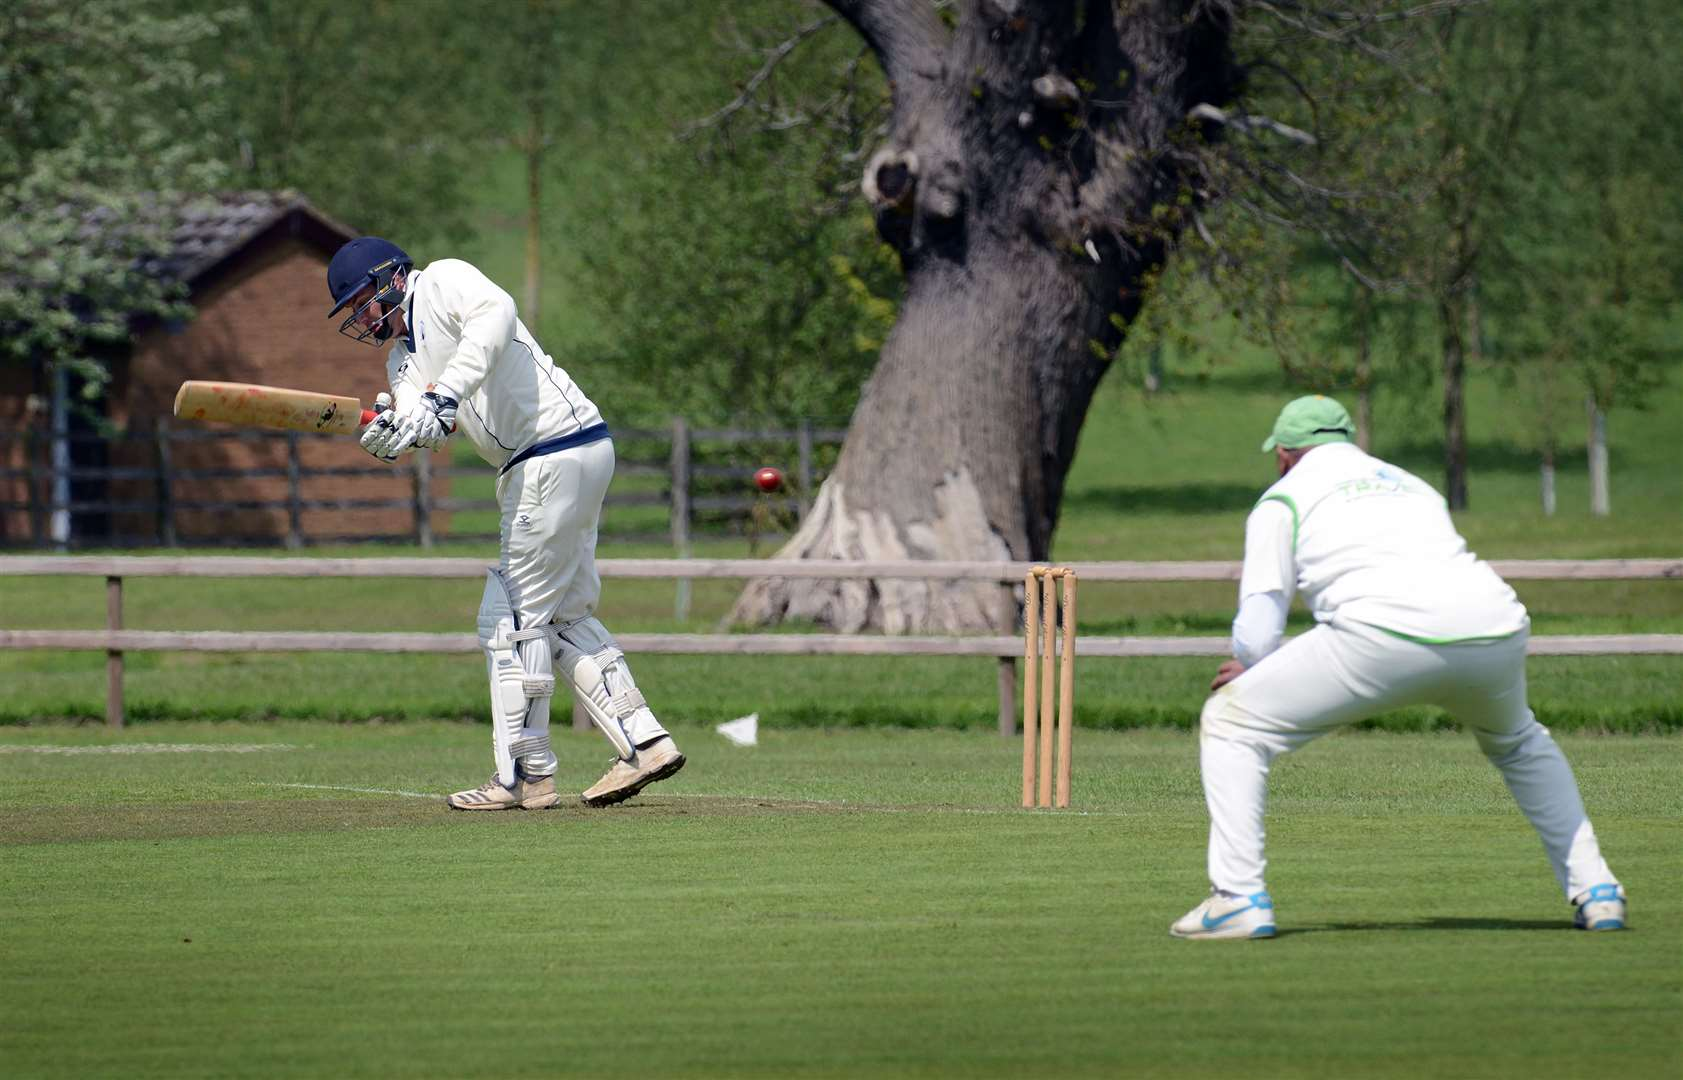 Gareth King notched a knock of 23 for Belvoir 1st XI on Saturday. Photo: Toby Roberts (10428294)